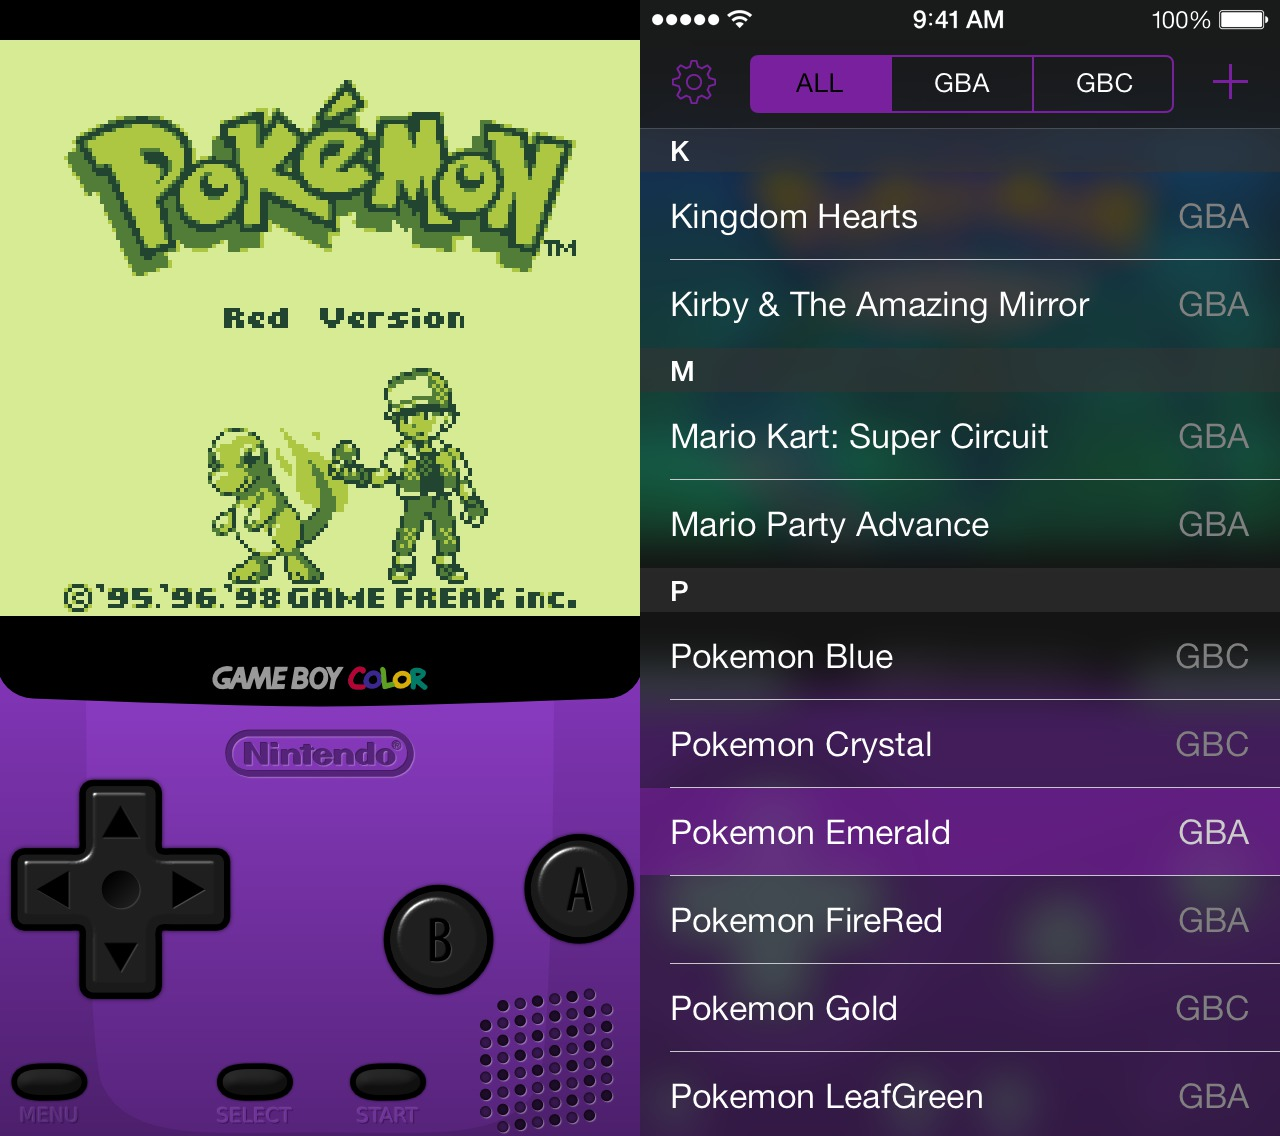 gba for ios emulator